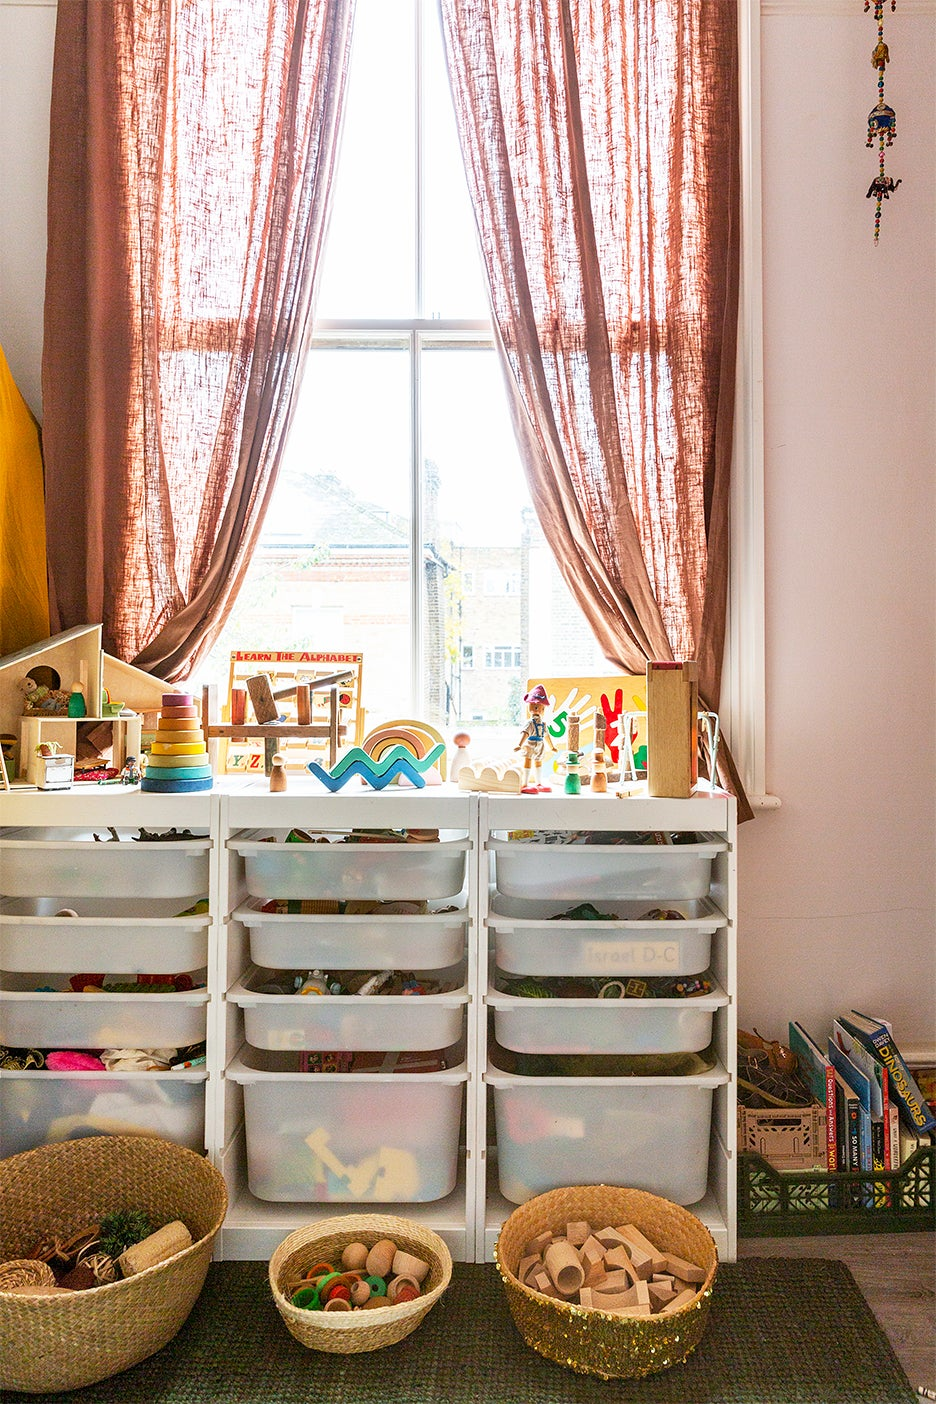 storage unit topped with toys